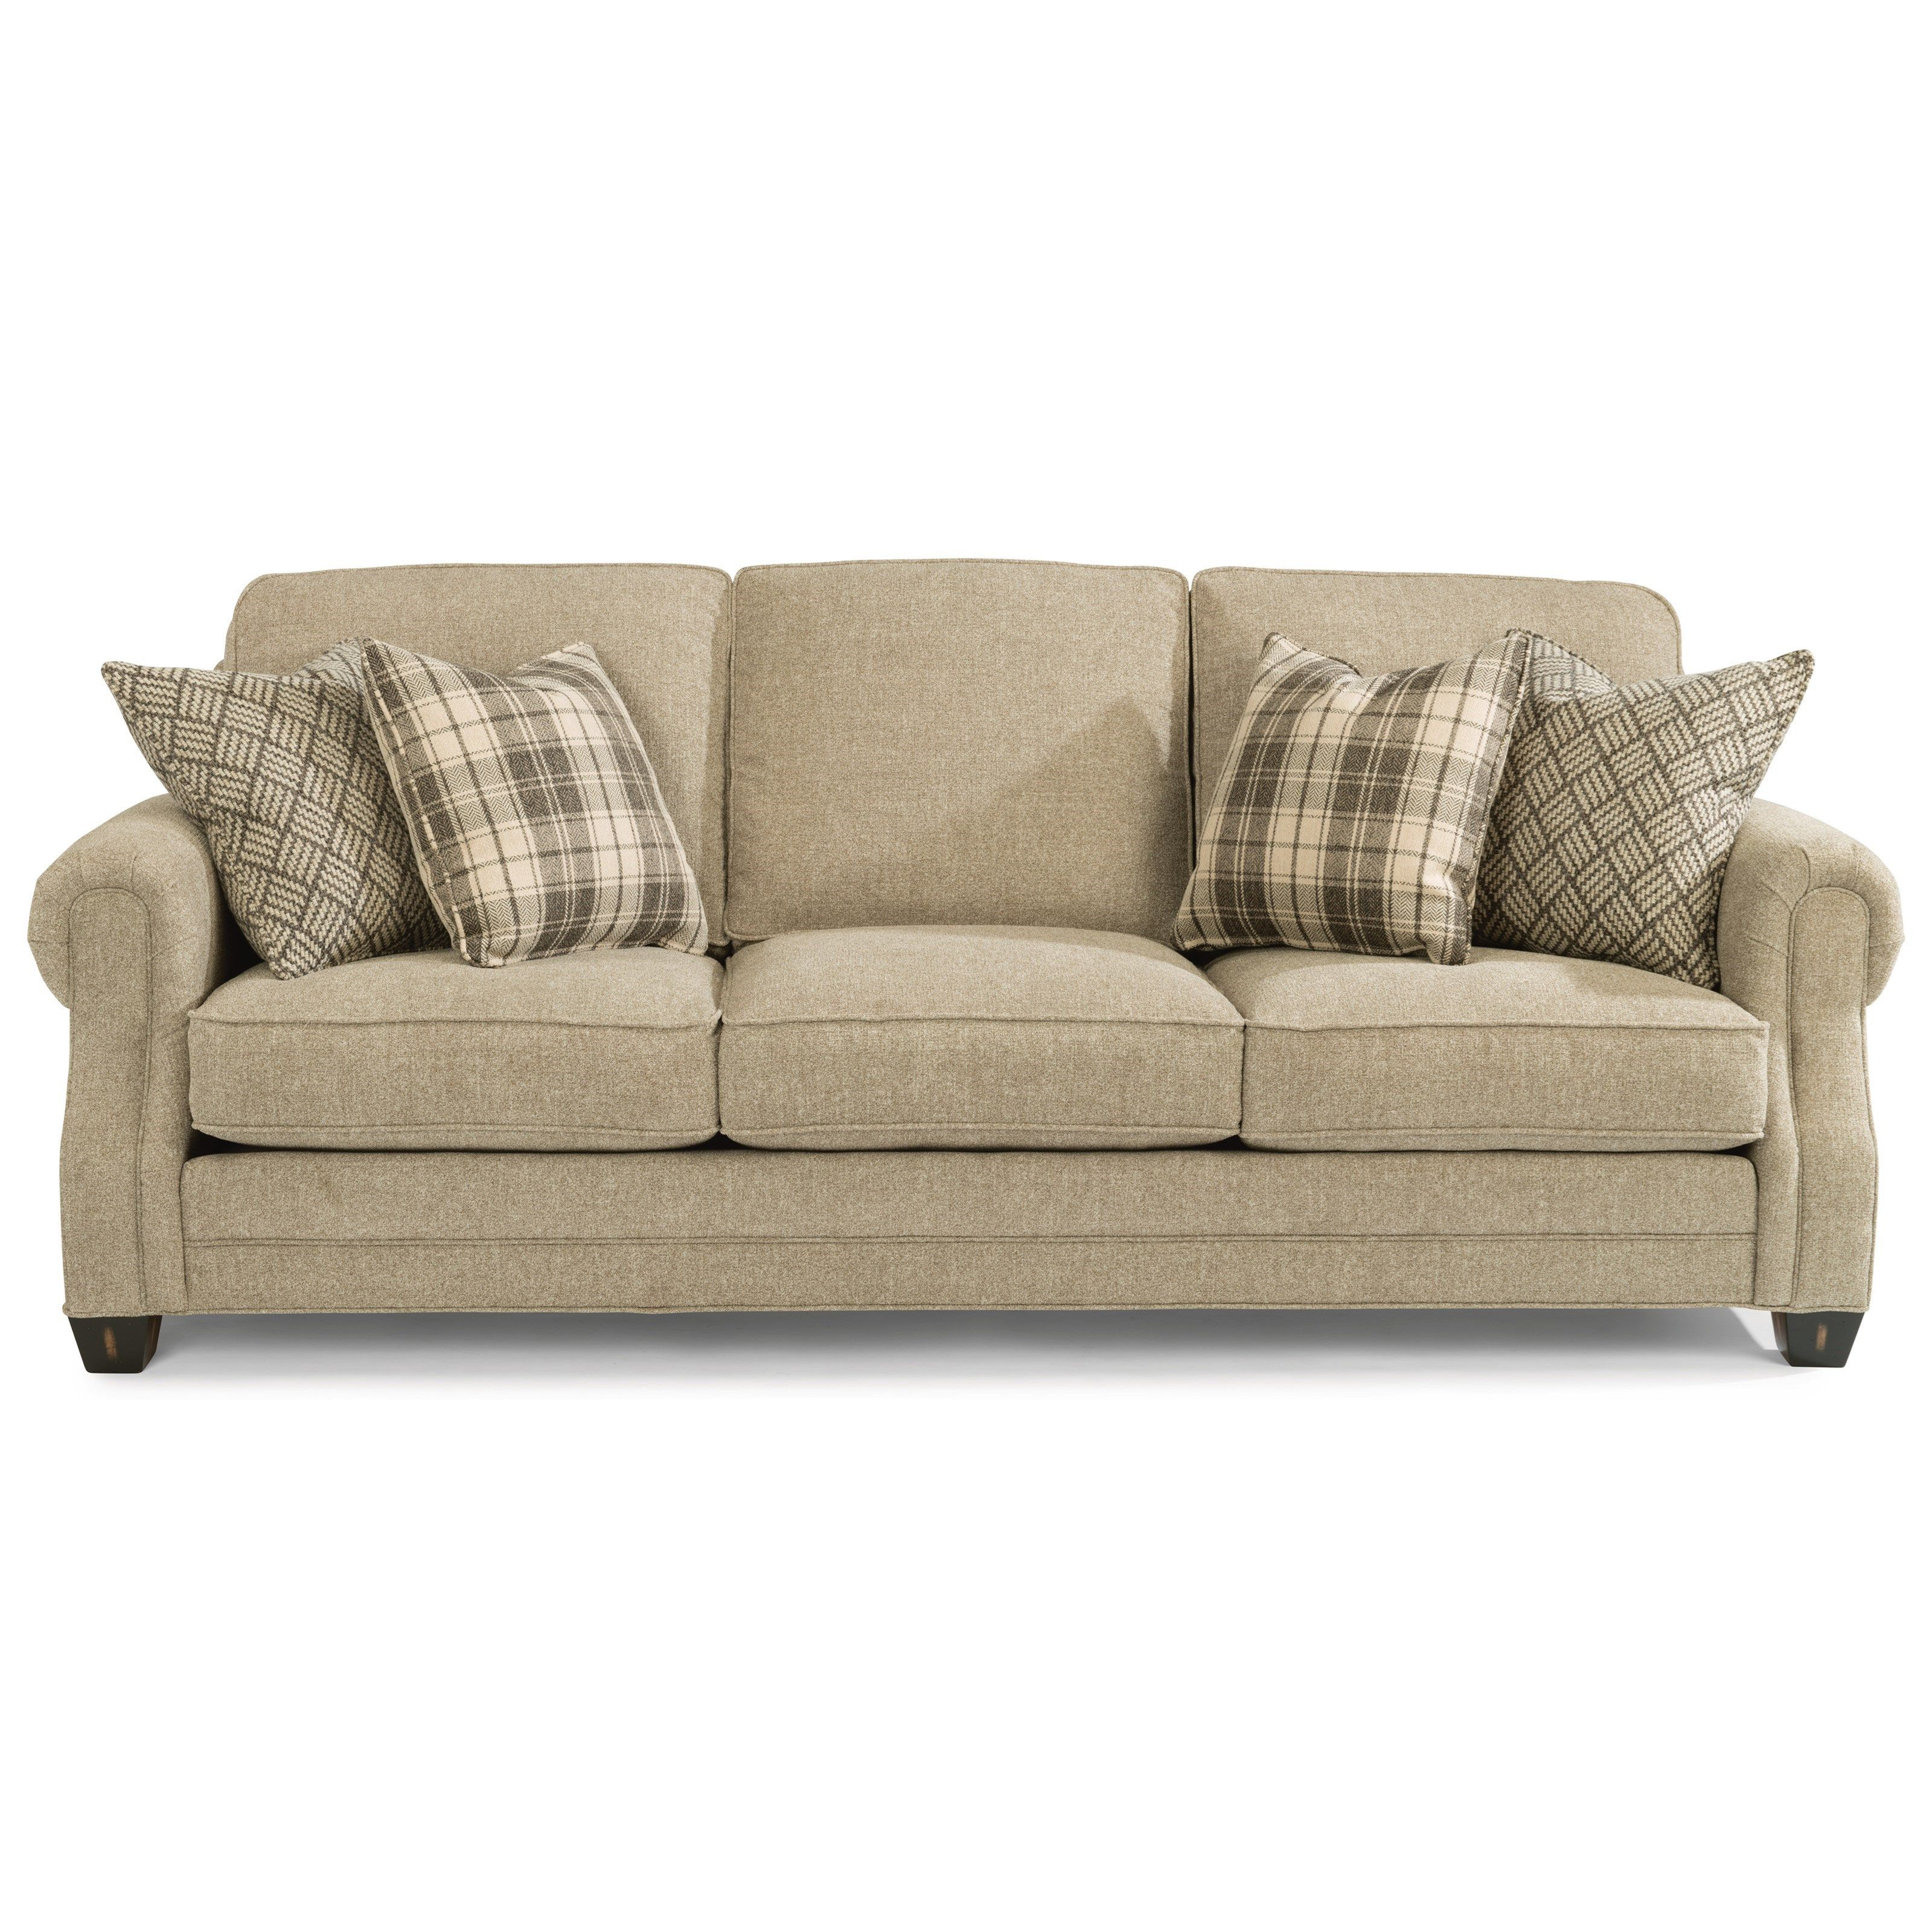 Gretchen Sofaflexsteel | Living Room Furniture | Pinterest With Patterson Ii Arm Sofa Chairs (Image 6 of 25)